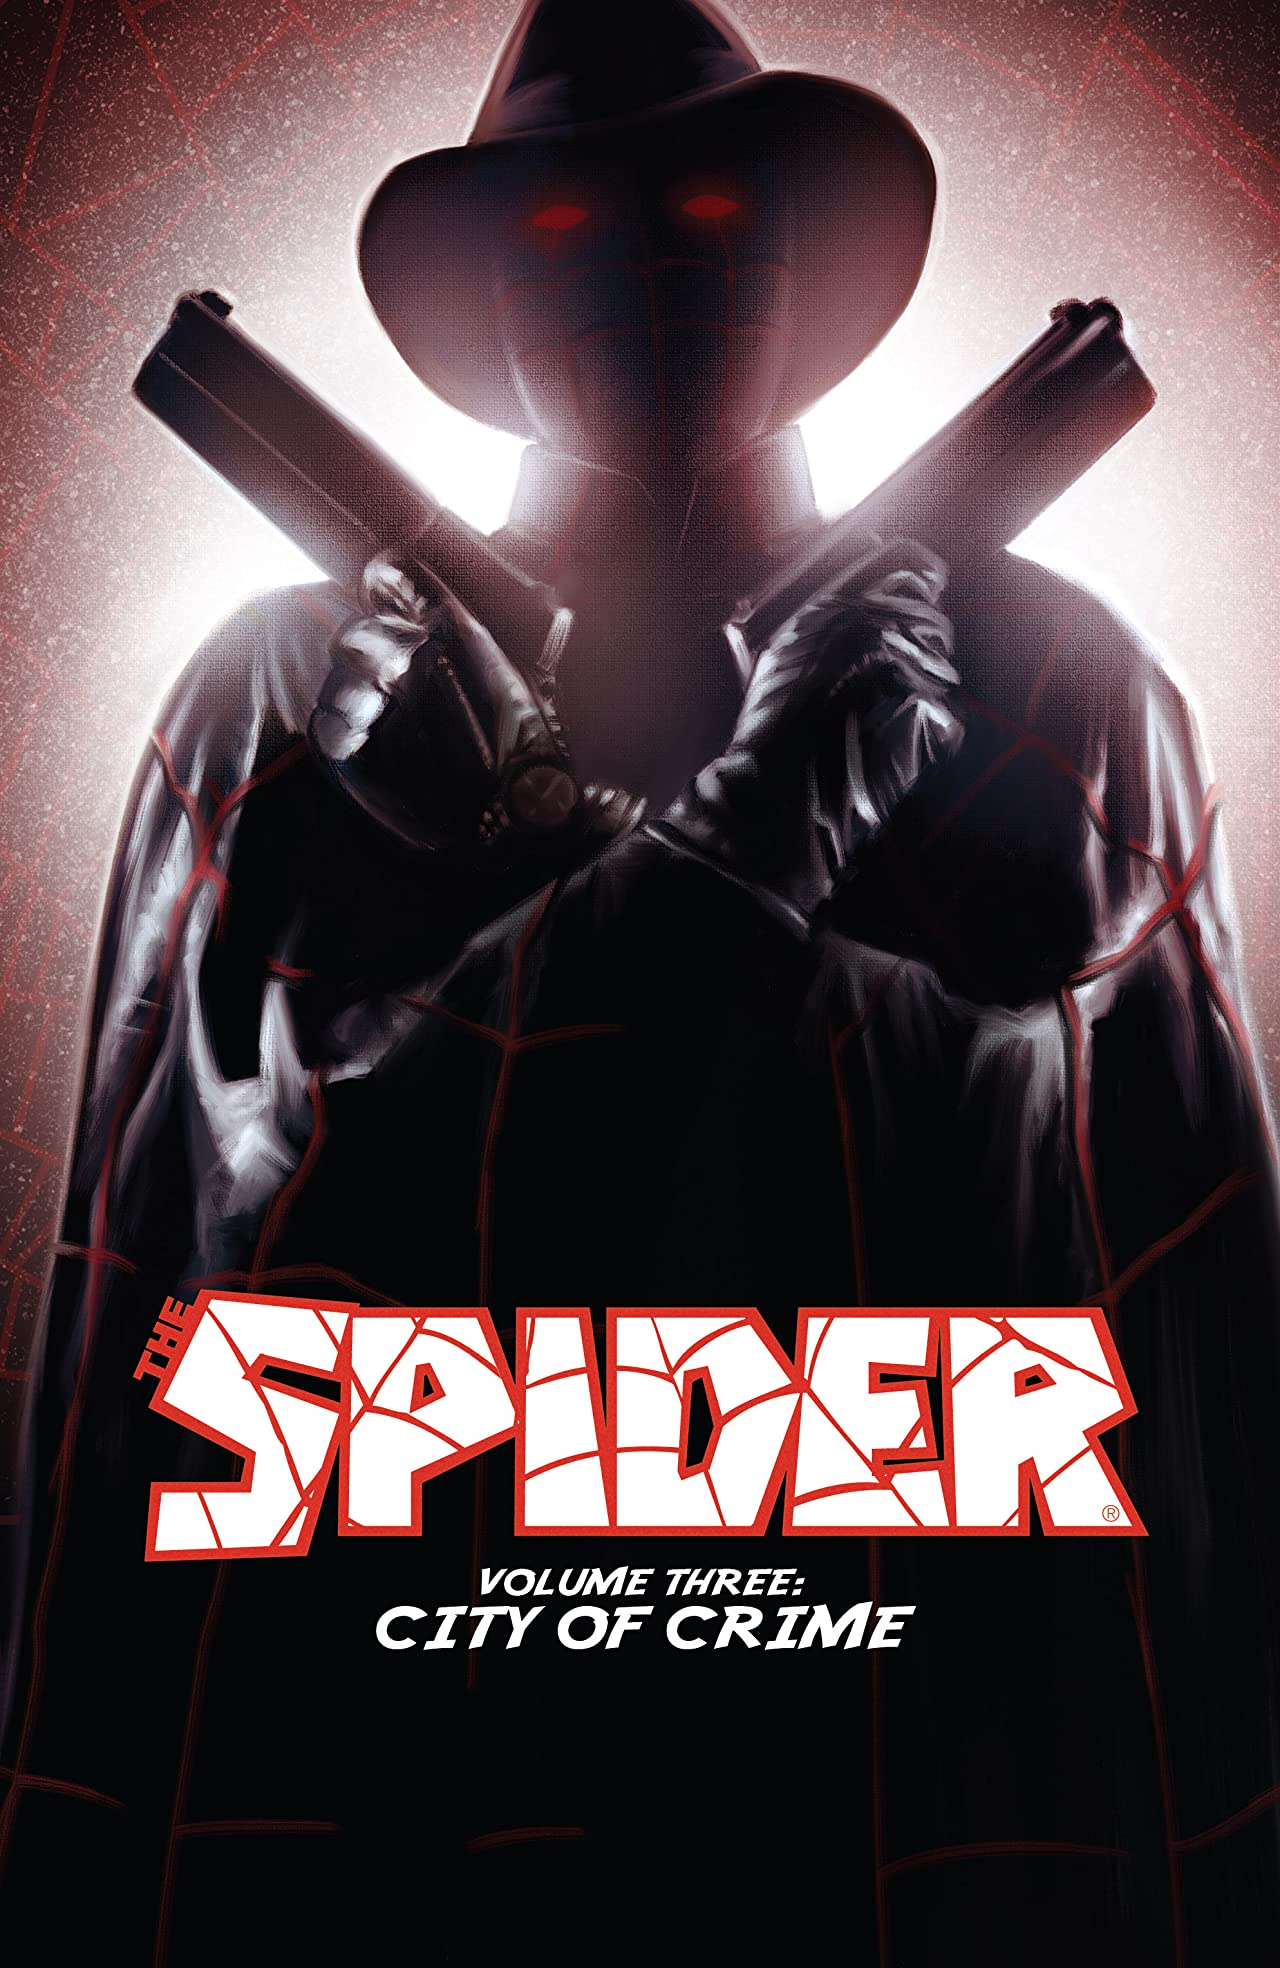 The Spider Vol. 3: City of Crime